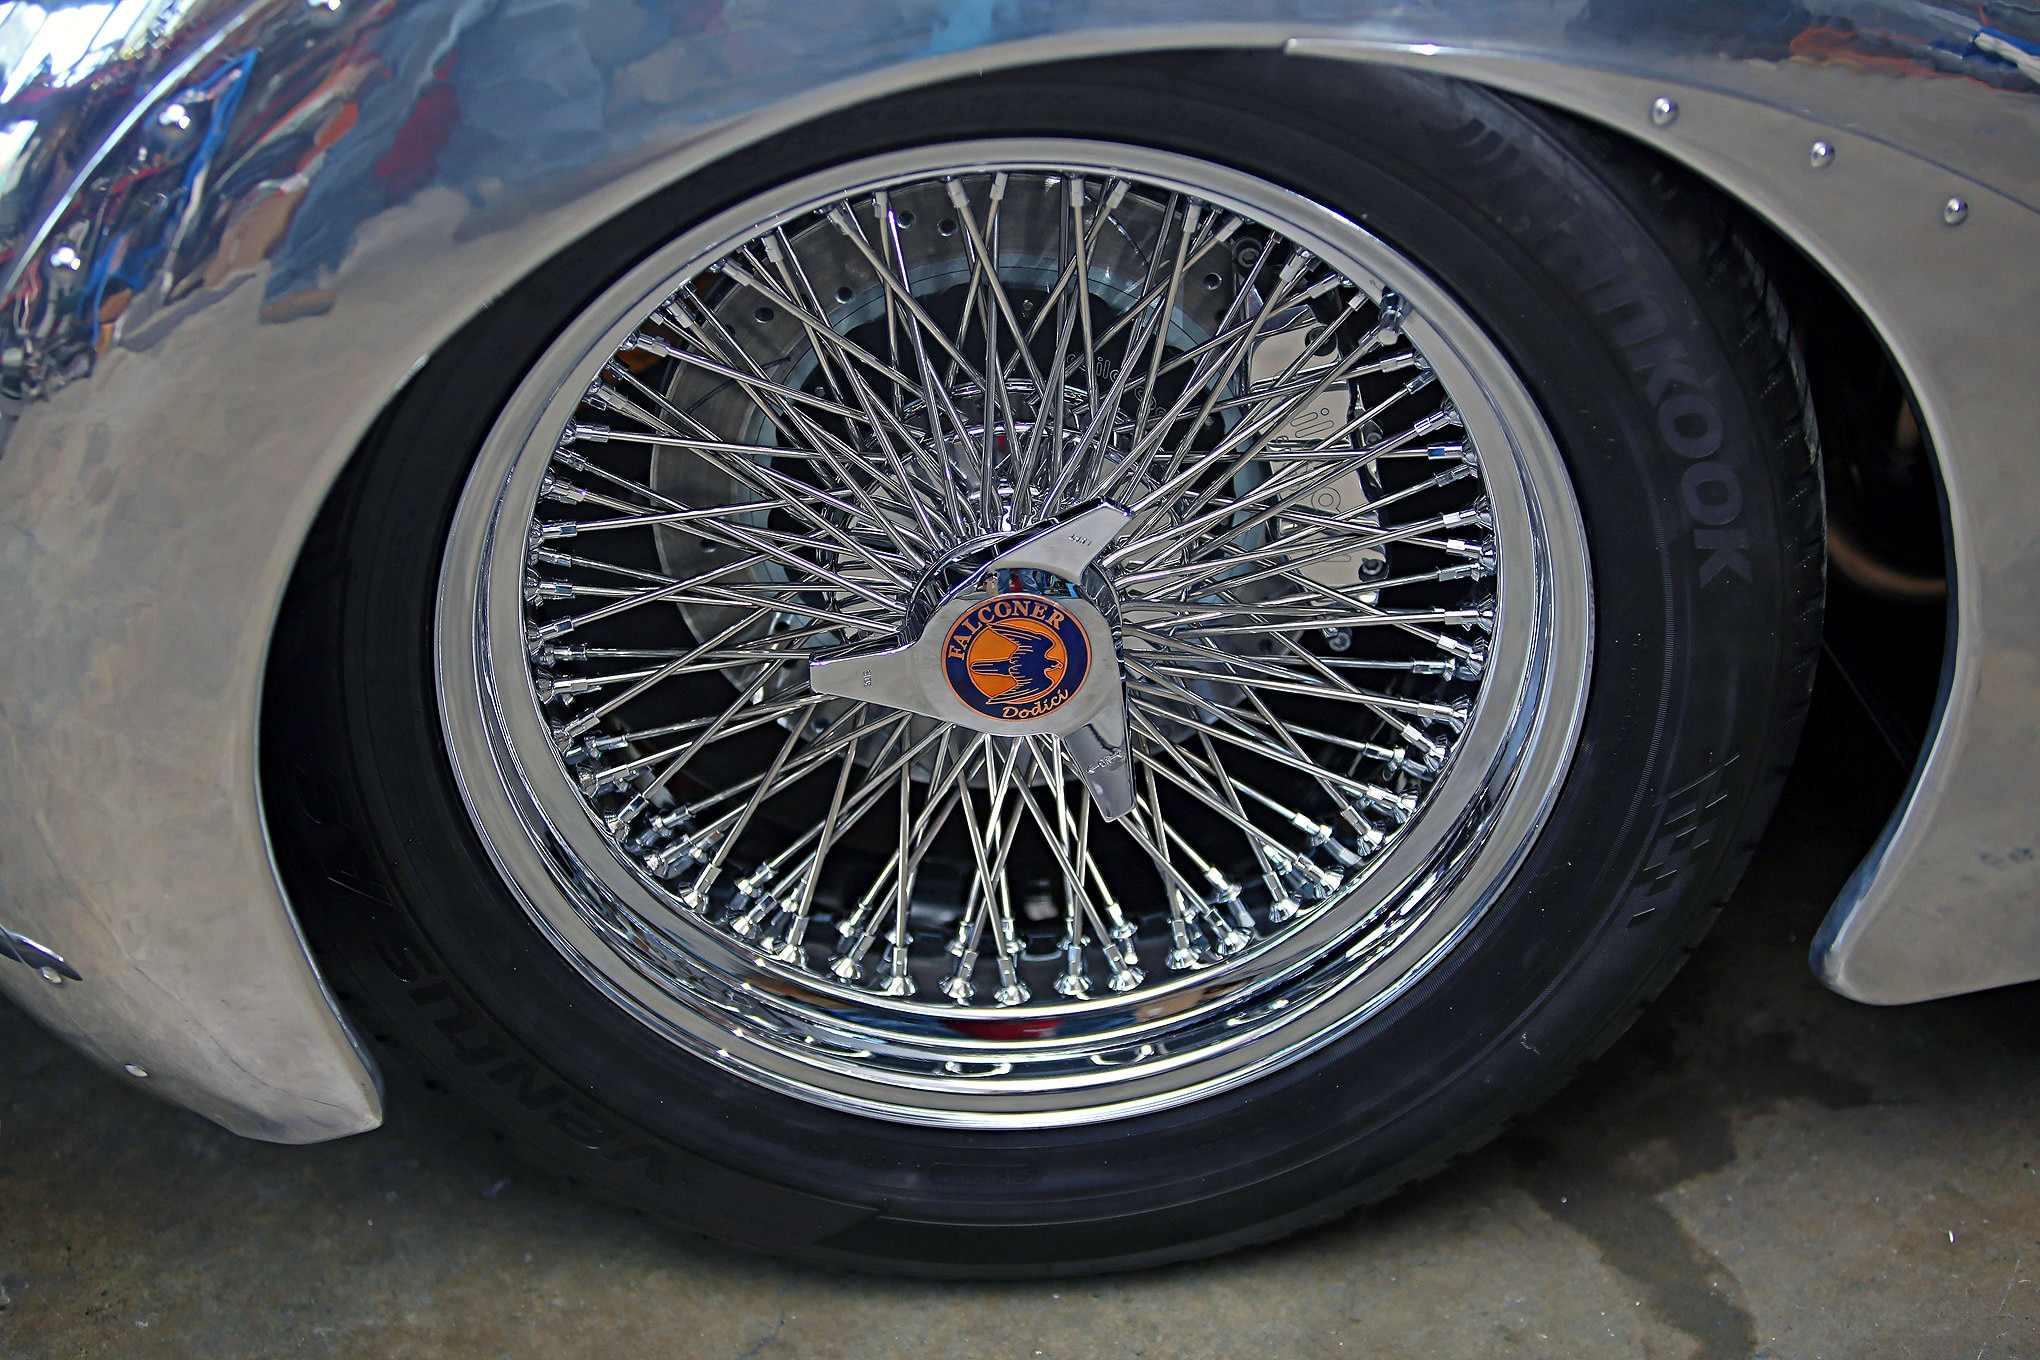 Brakes are from Wilwood, with 14-inch rotors all around. The front uses six-piston calipers, four-pistons for in the rear. With the stack injection there was nowhere to put a vacuum port, so a Hydratech hydraulic brake system was plumbed to draw line pressure from the same pump that feeds the steering rack and pinion.